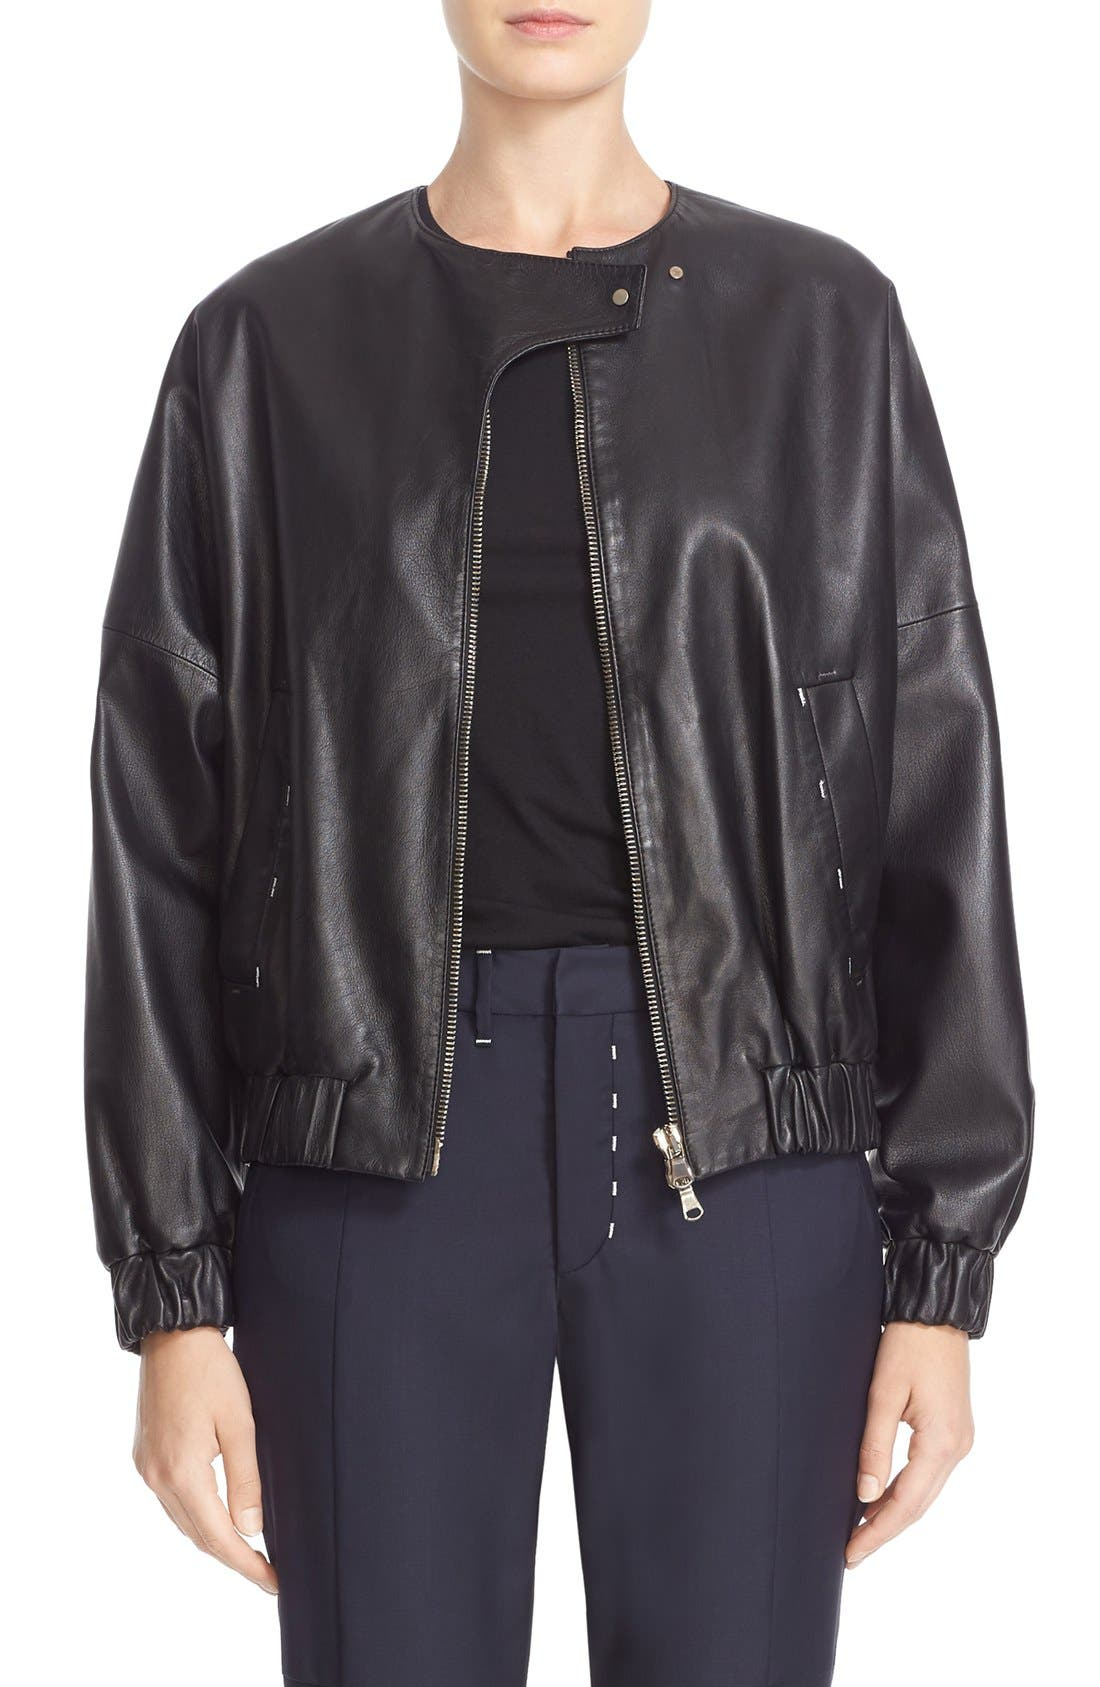 Alternate Image 1 Selected - Colovos Leather Bomber Jacket